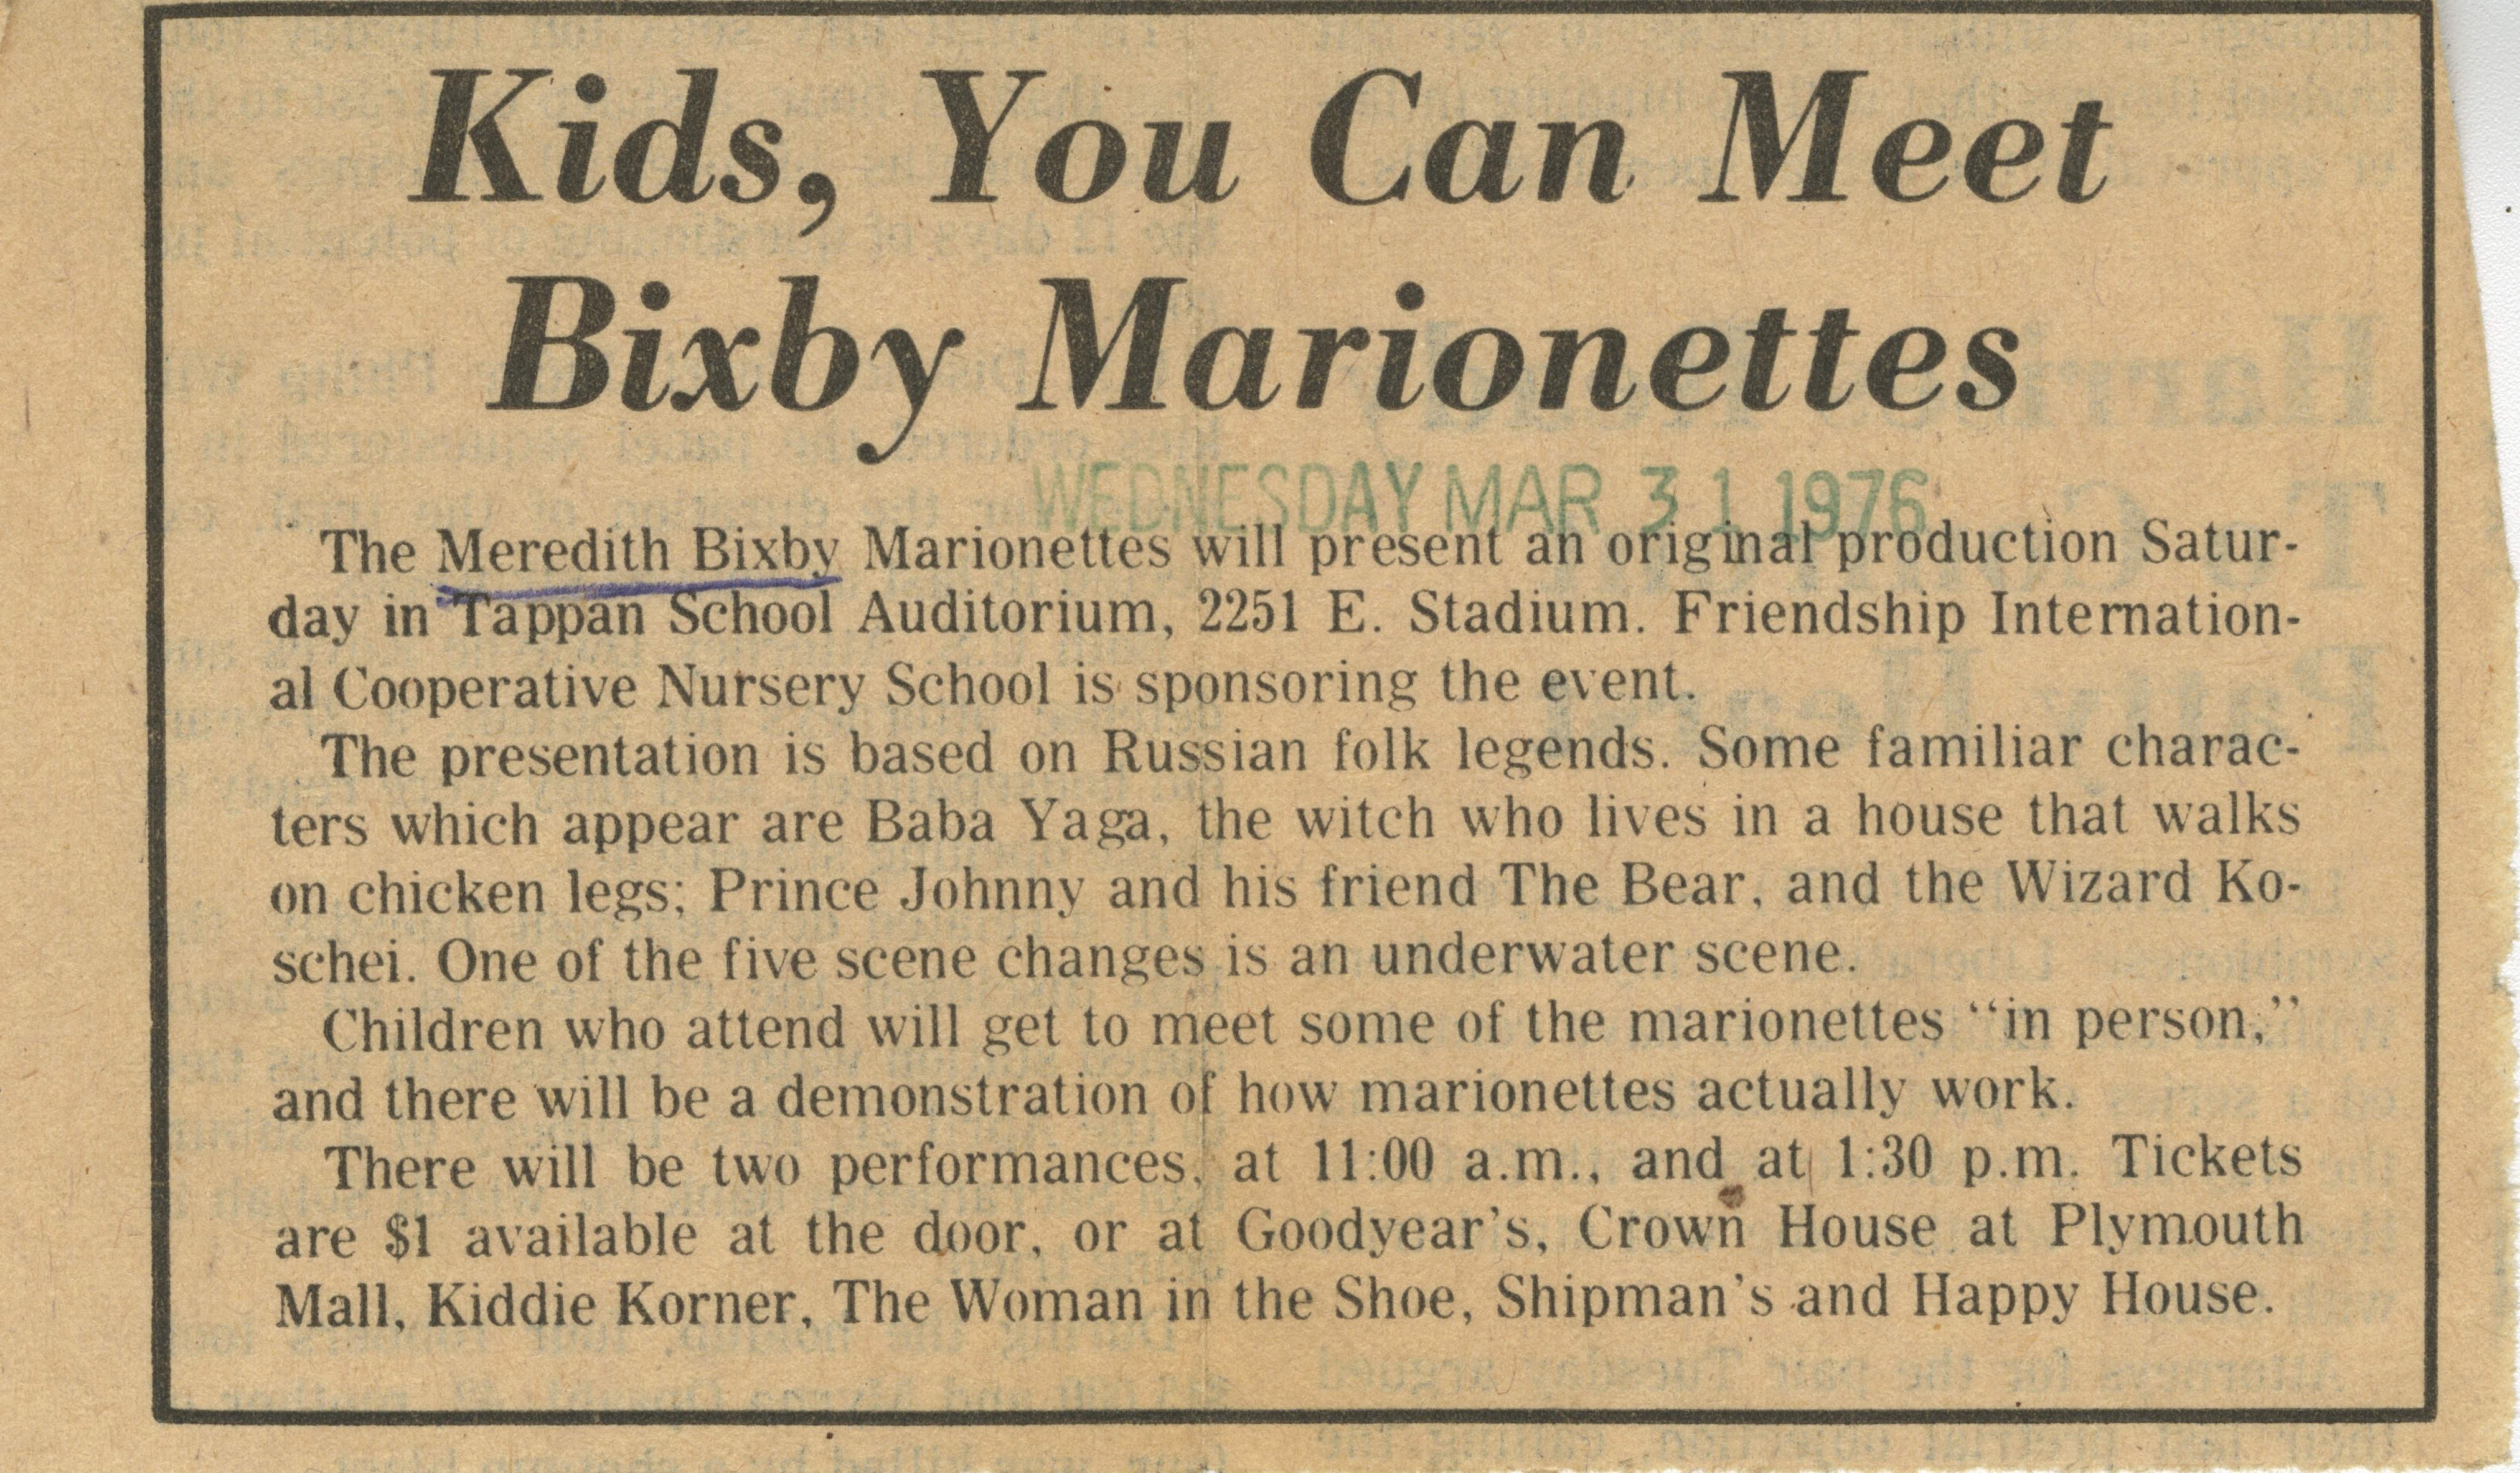 Kids, You Can Meet Bixby Marionettes image